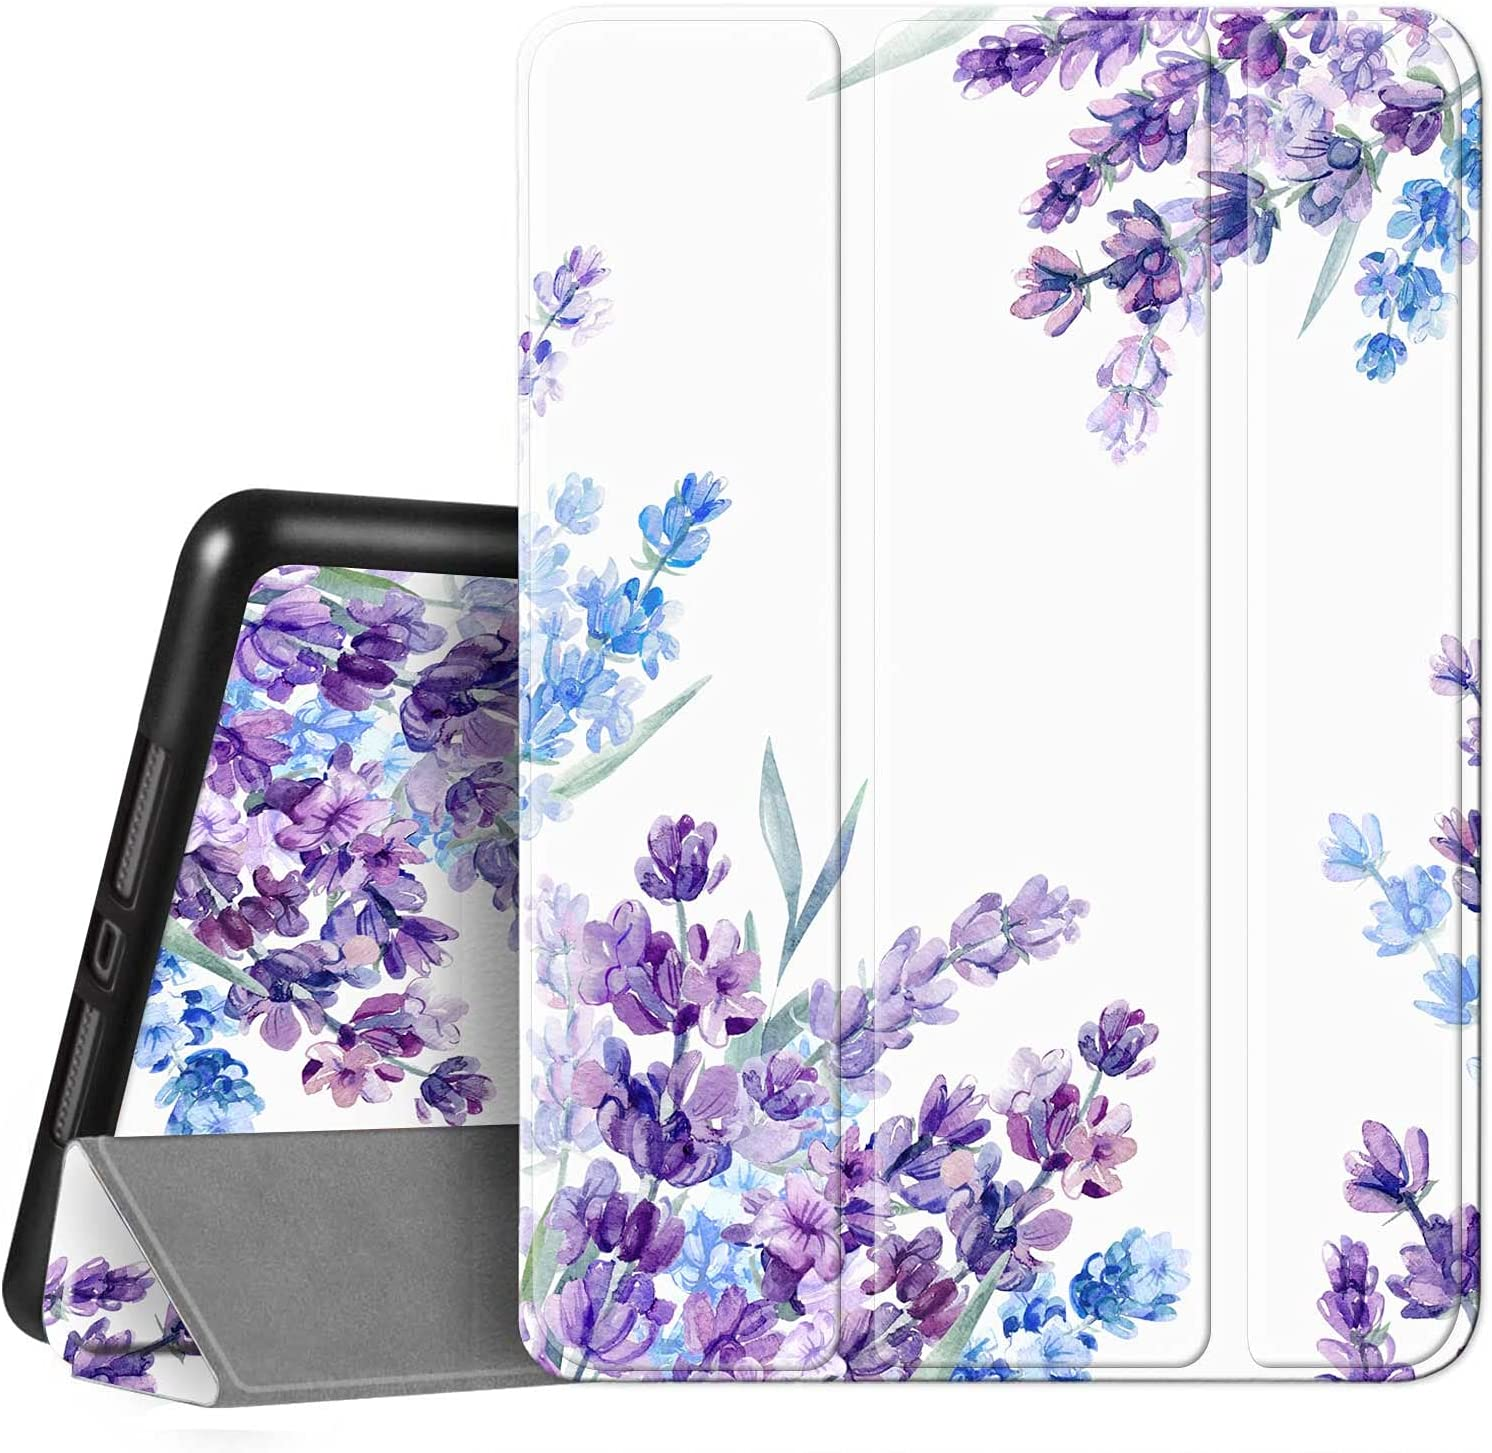 Hi Space iPad Case for iPad 10.2 8th/7th Generation & 10.5 Air 3th & iPad Pro 10.5 with Pencil Holder, Lavender Flower Floral Trifold Slim Stand Protective Smart Cover Shockproof Case Auto Sleep Wake